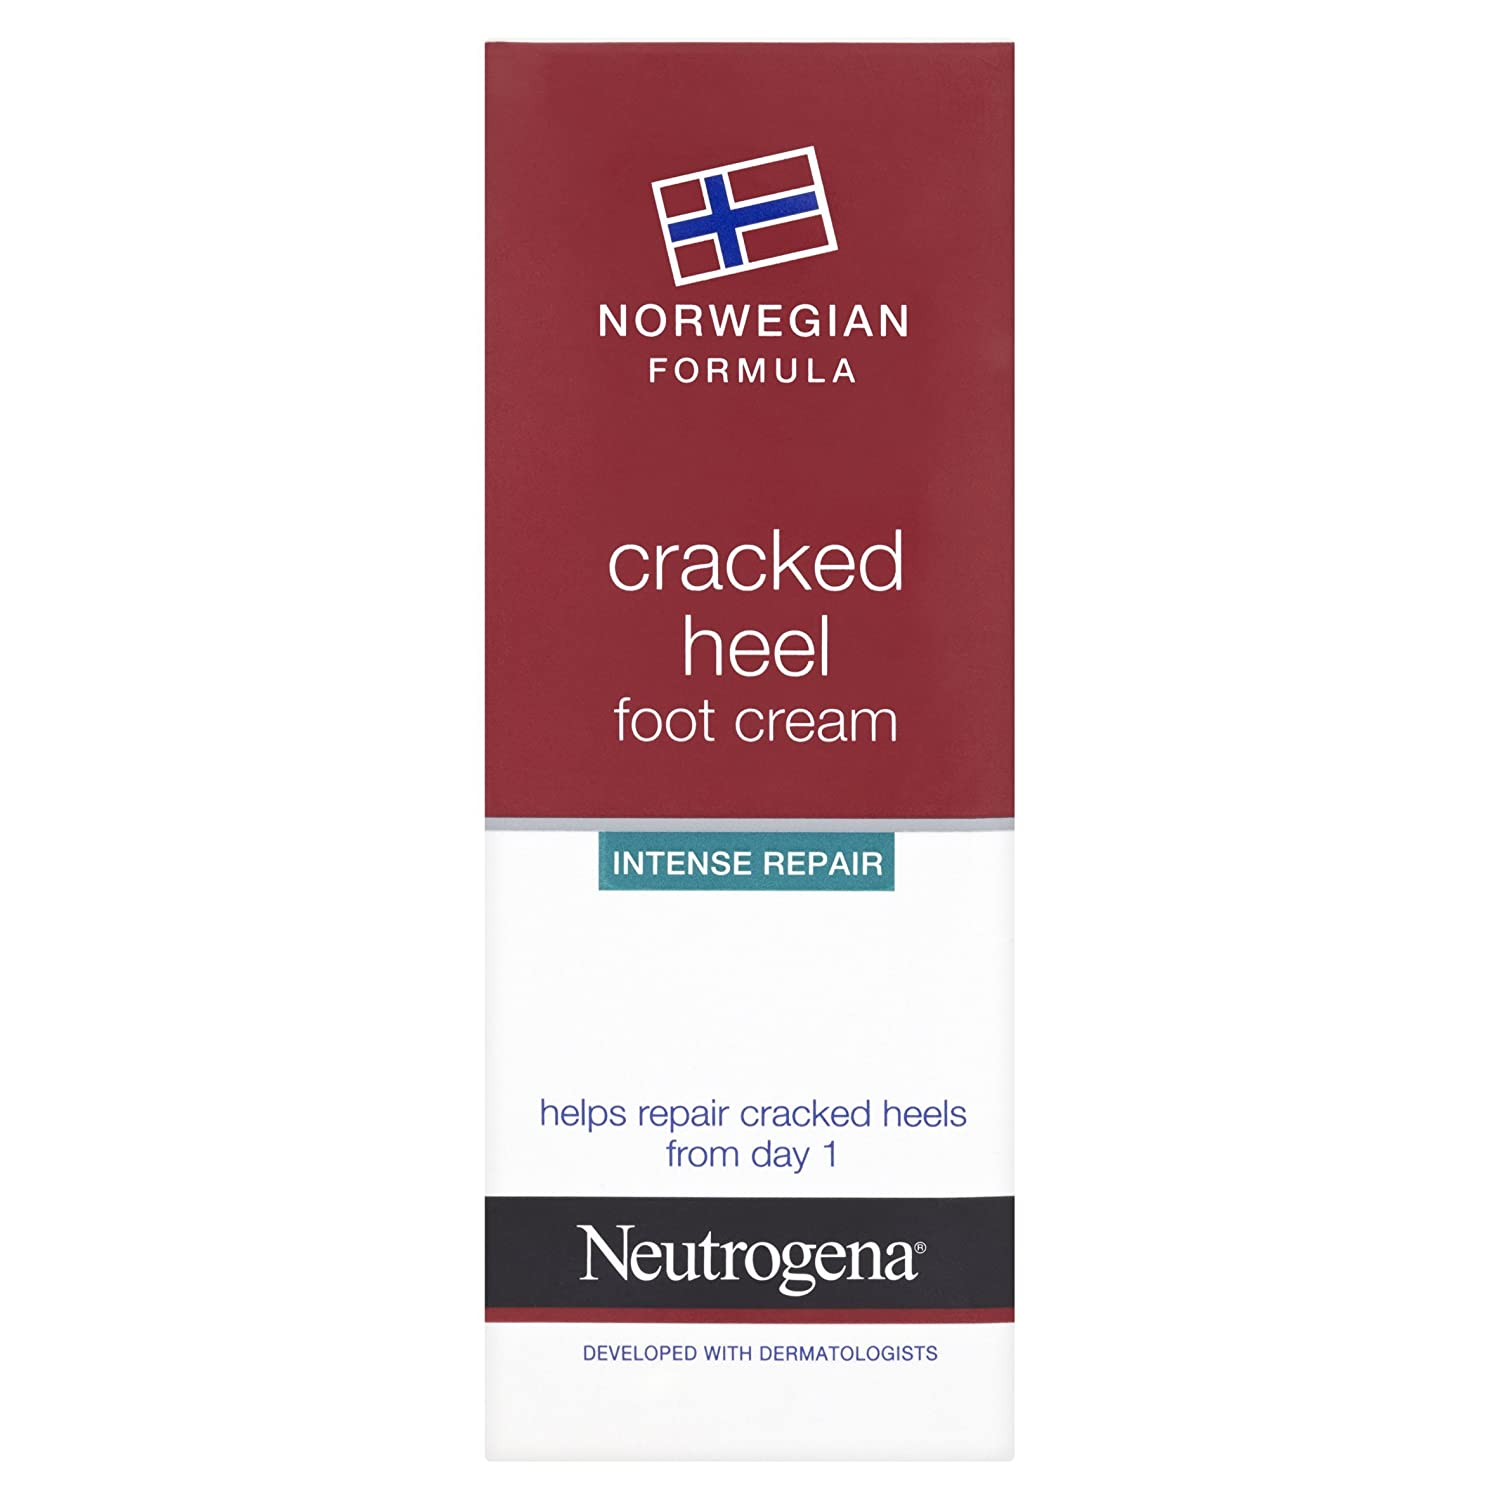 Neutrogena Norwegian Formula Cracked Heel Intense Repair Foot Cream, 40ml Johnson & Johnson 4485201